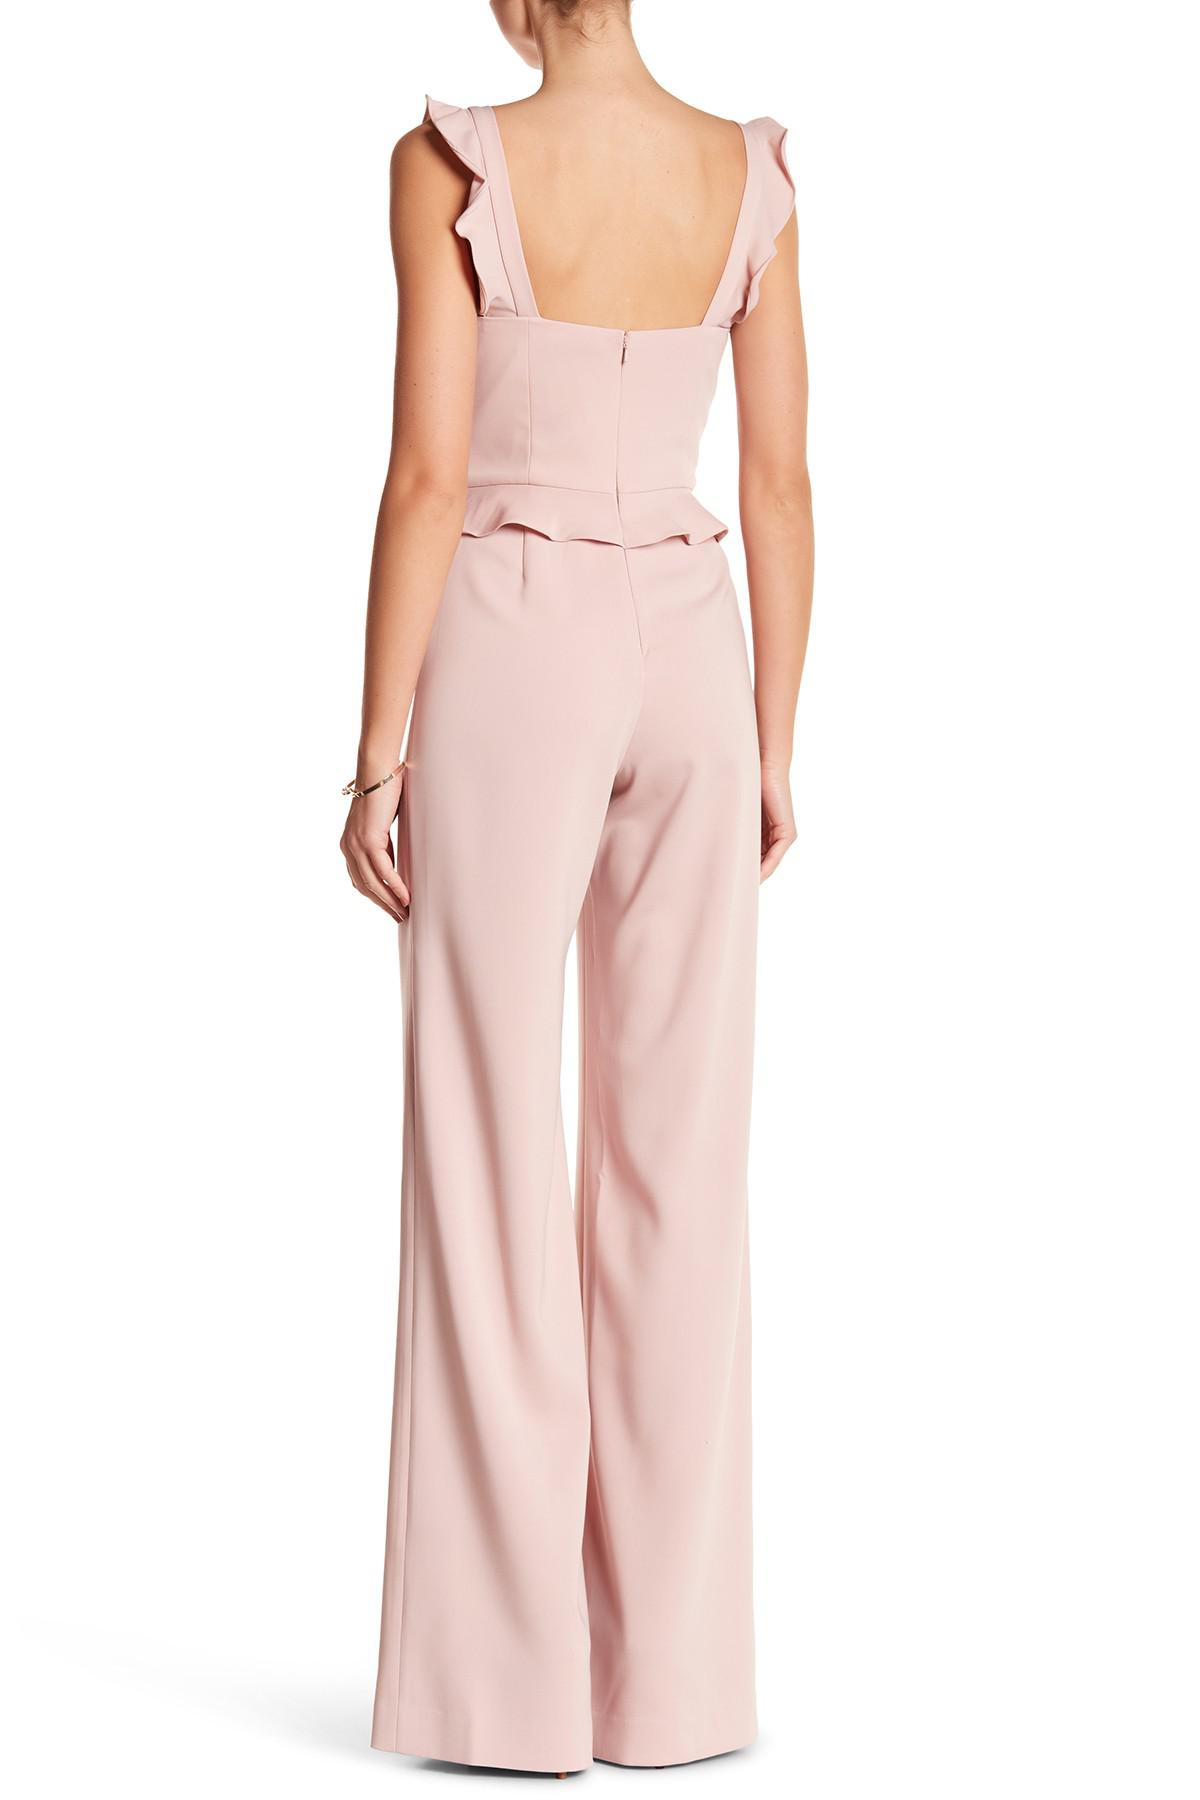 48dcf158ad3 Lyst - Jay Godfrey Roy Jumpsuit in Pink